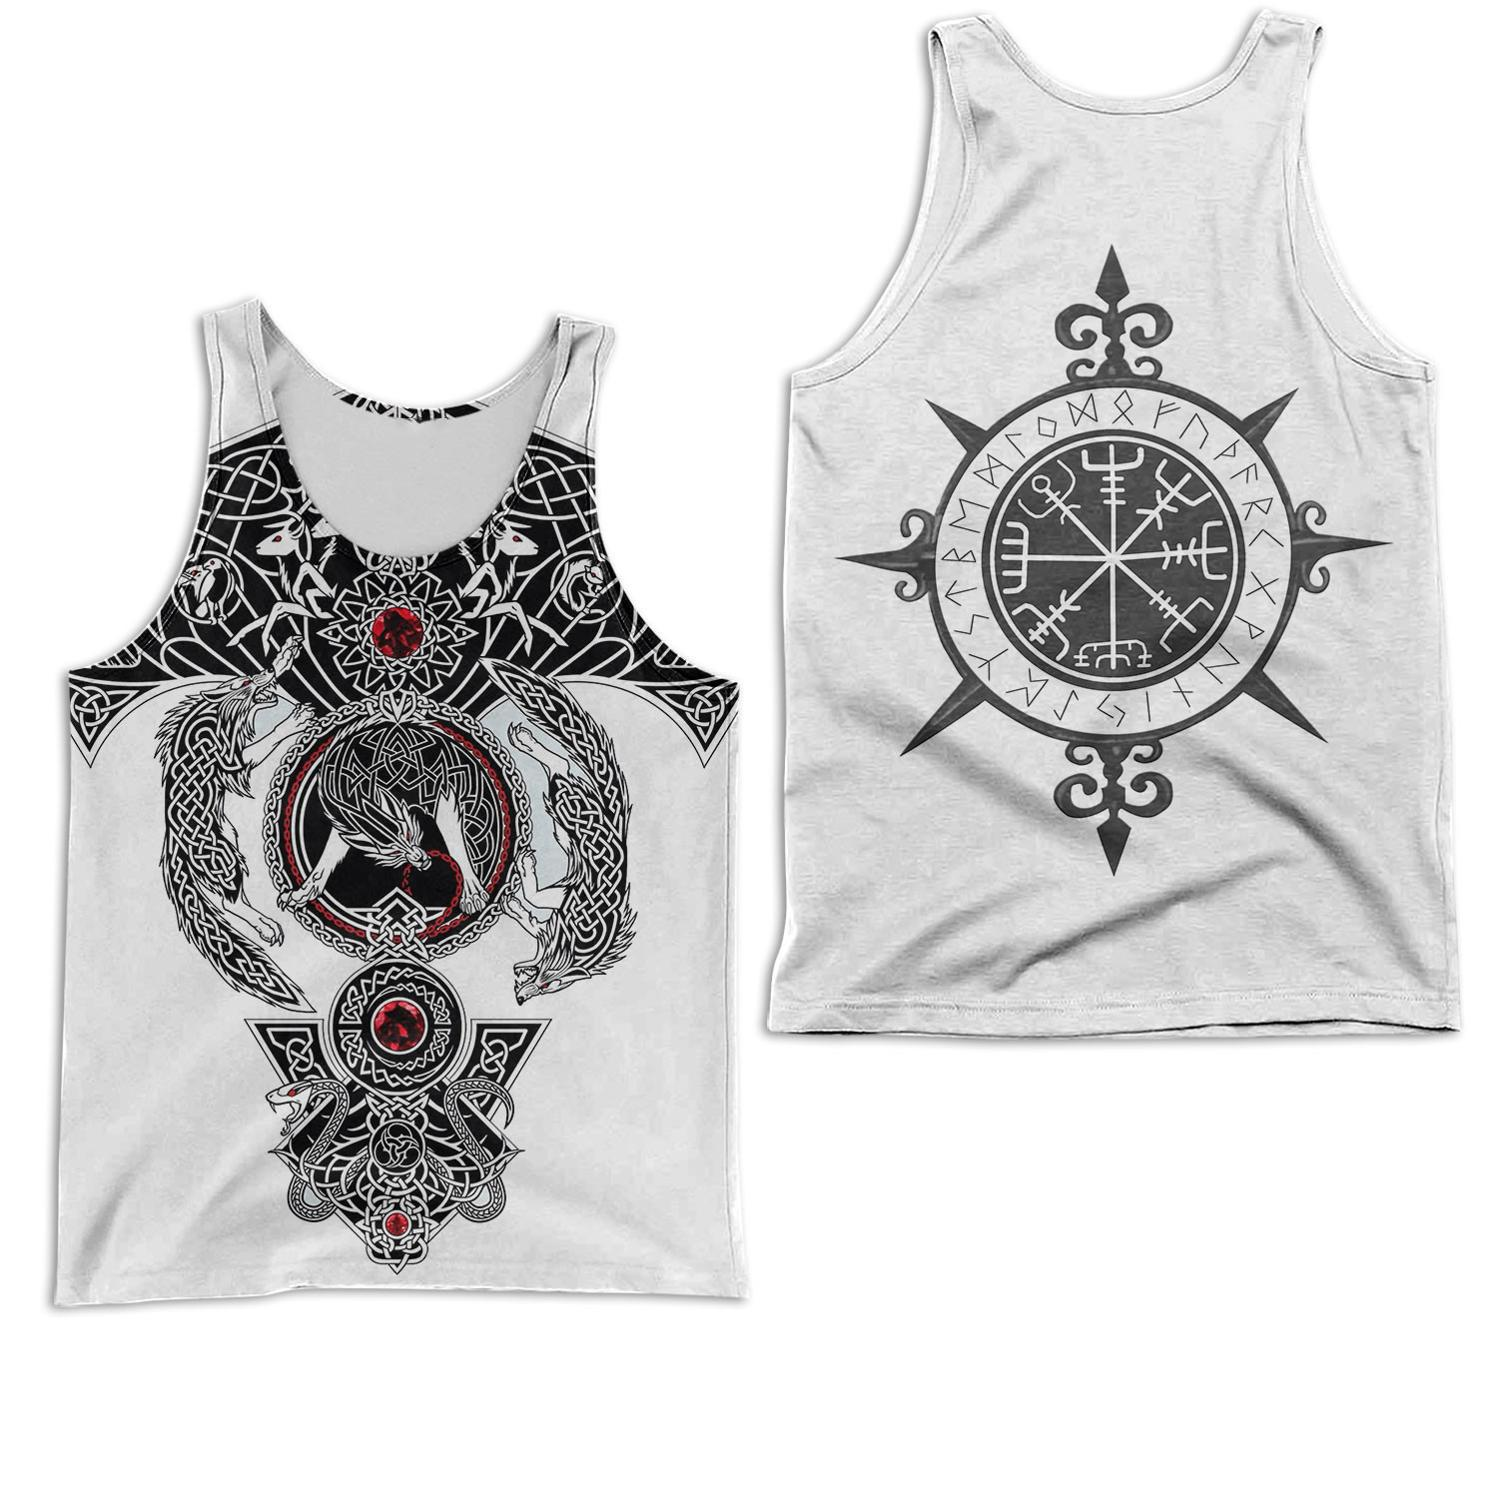 Funny Novelty Vest Singlet Top T Is For Tattoo